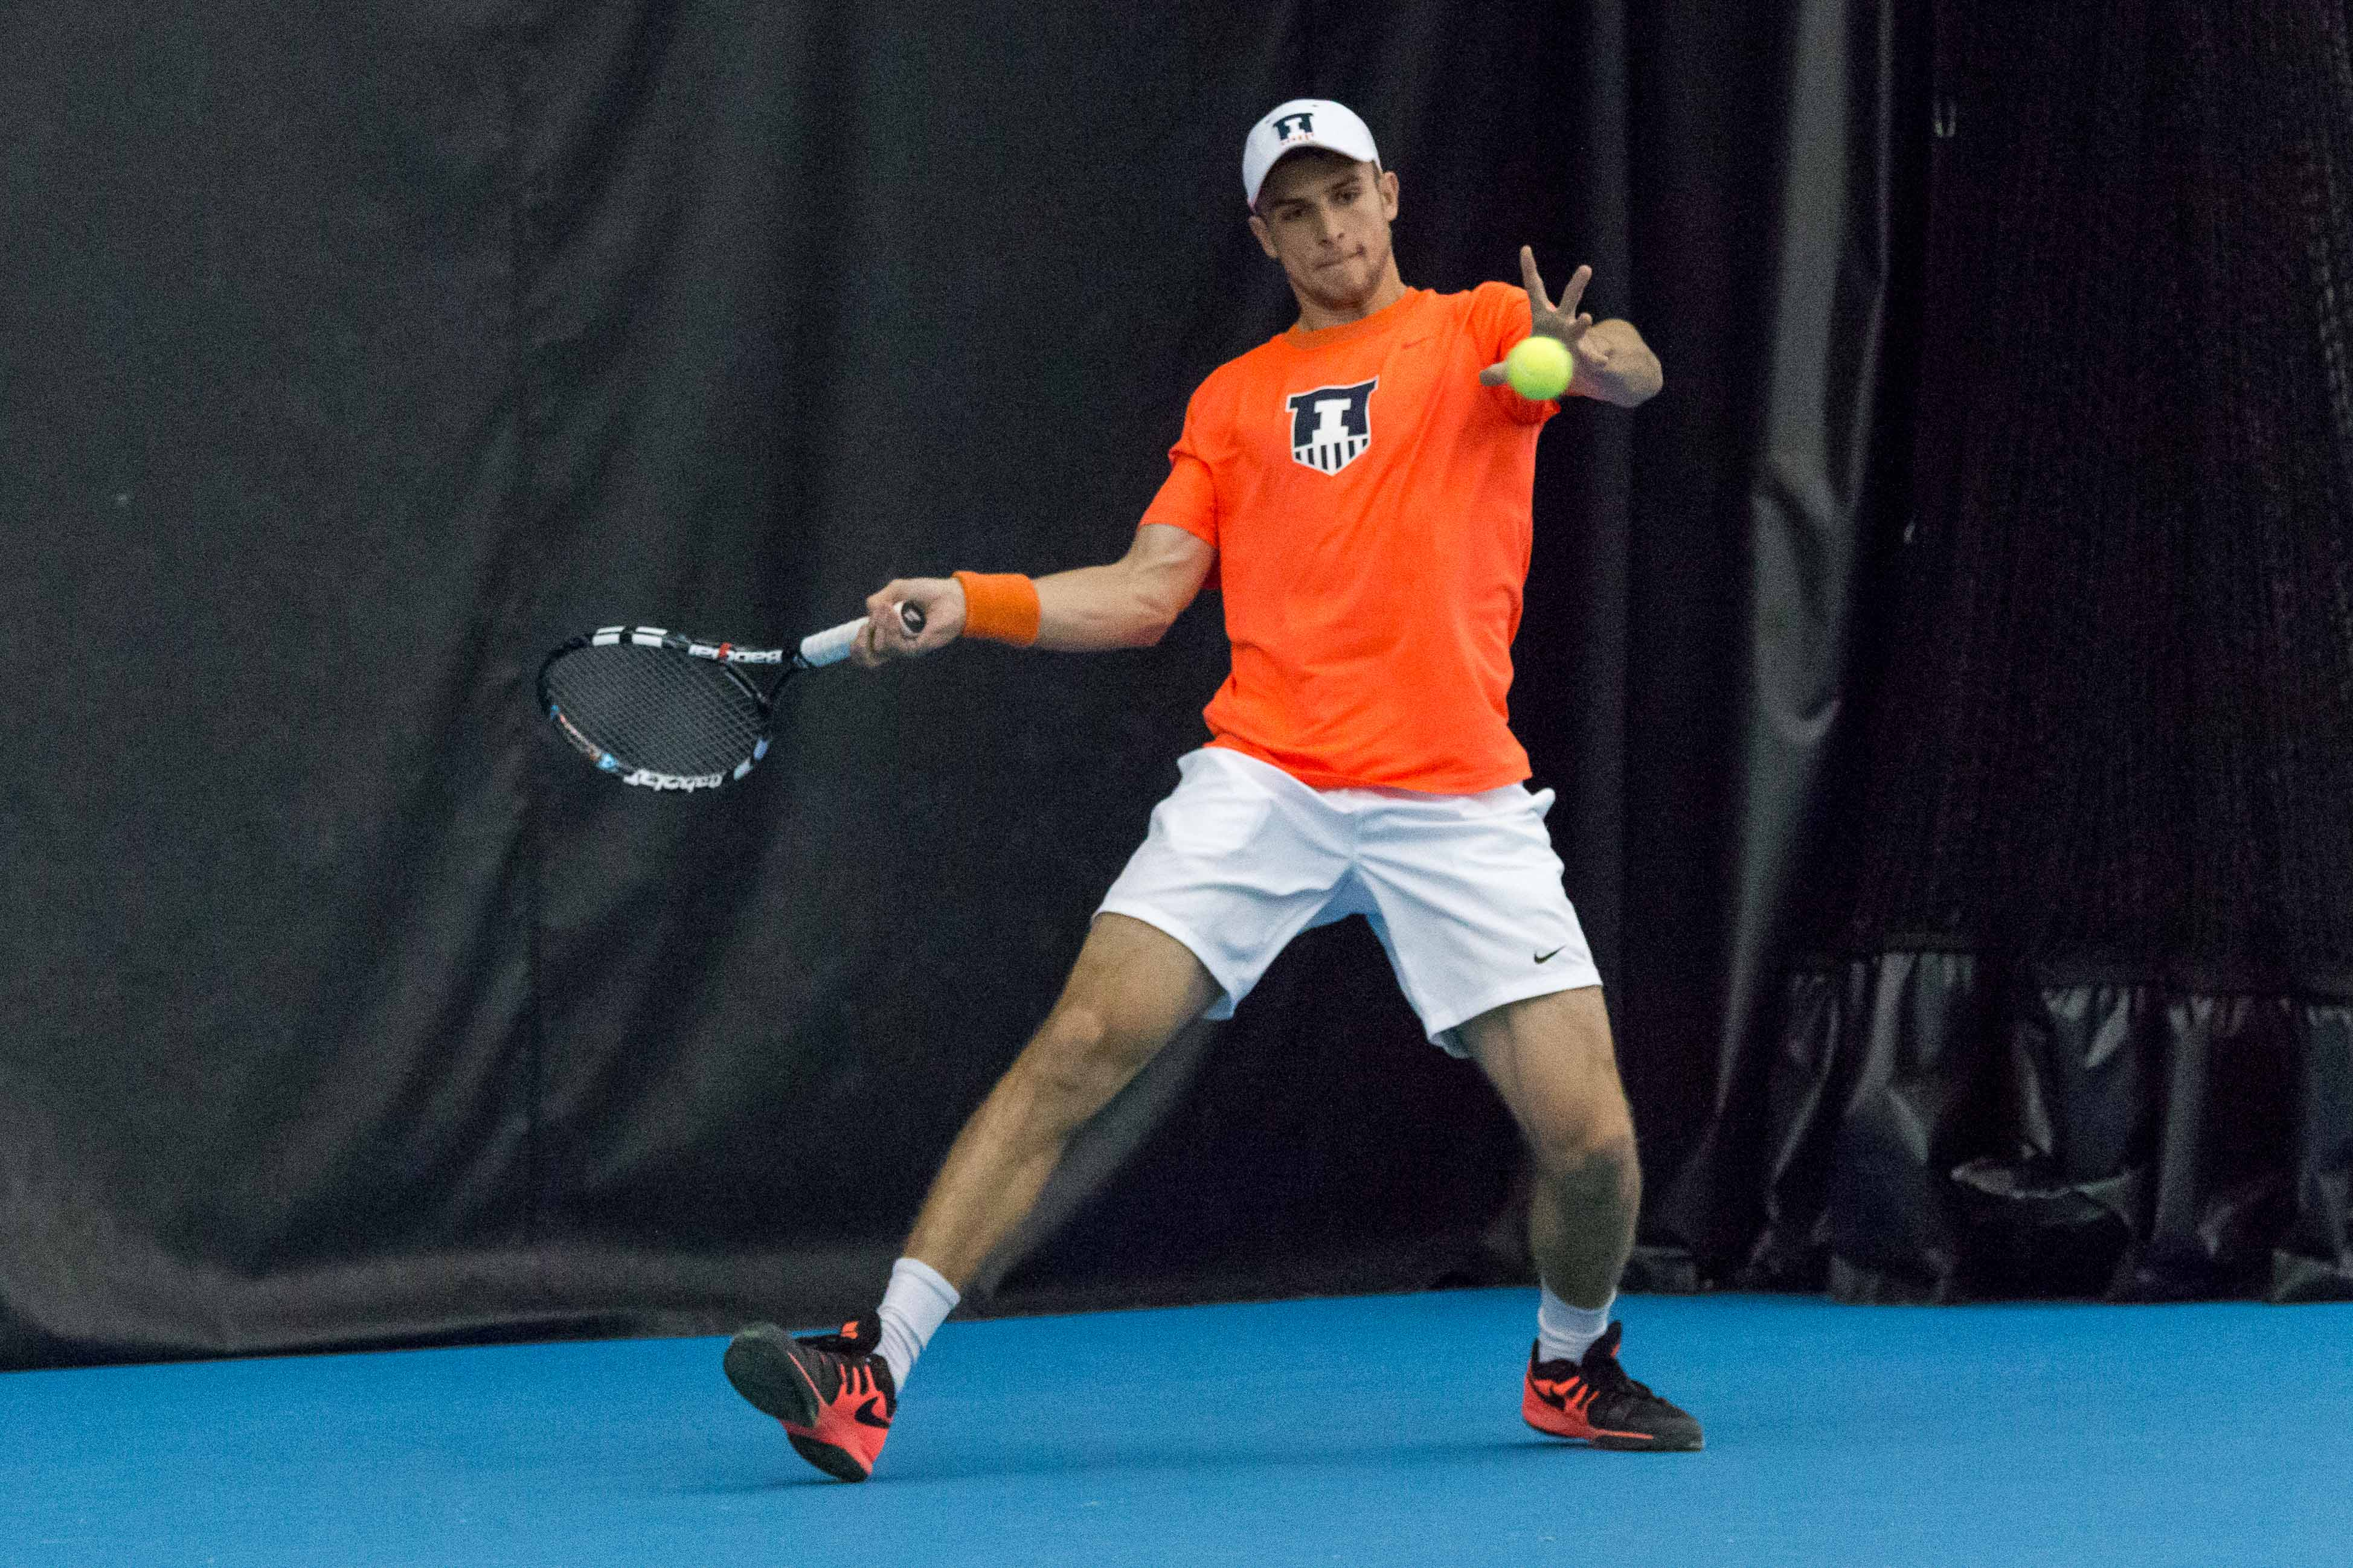 Illinois' Aleks Vukic gets ready to return the ball during the match against Wisconsin at the Atkin's Tennis Center on Sunday, April 3.